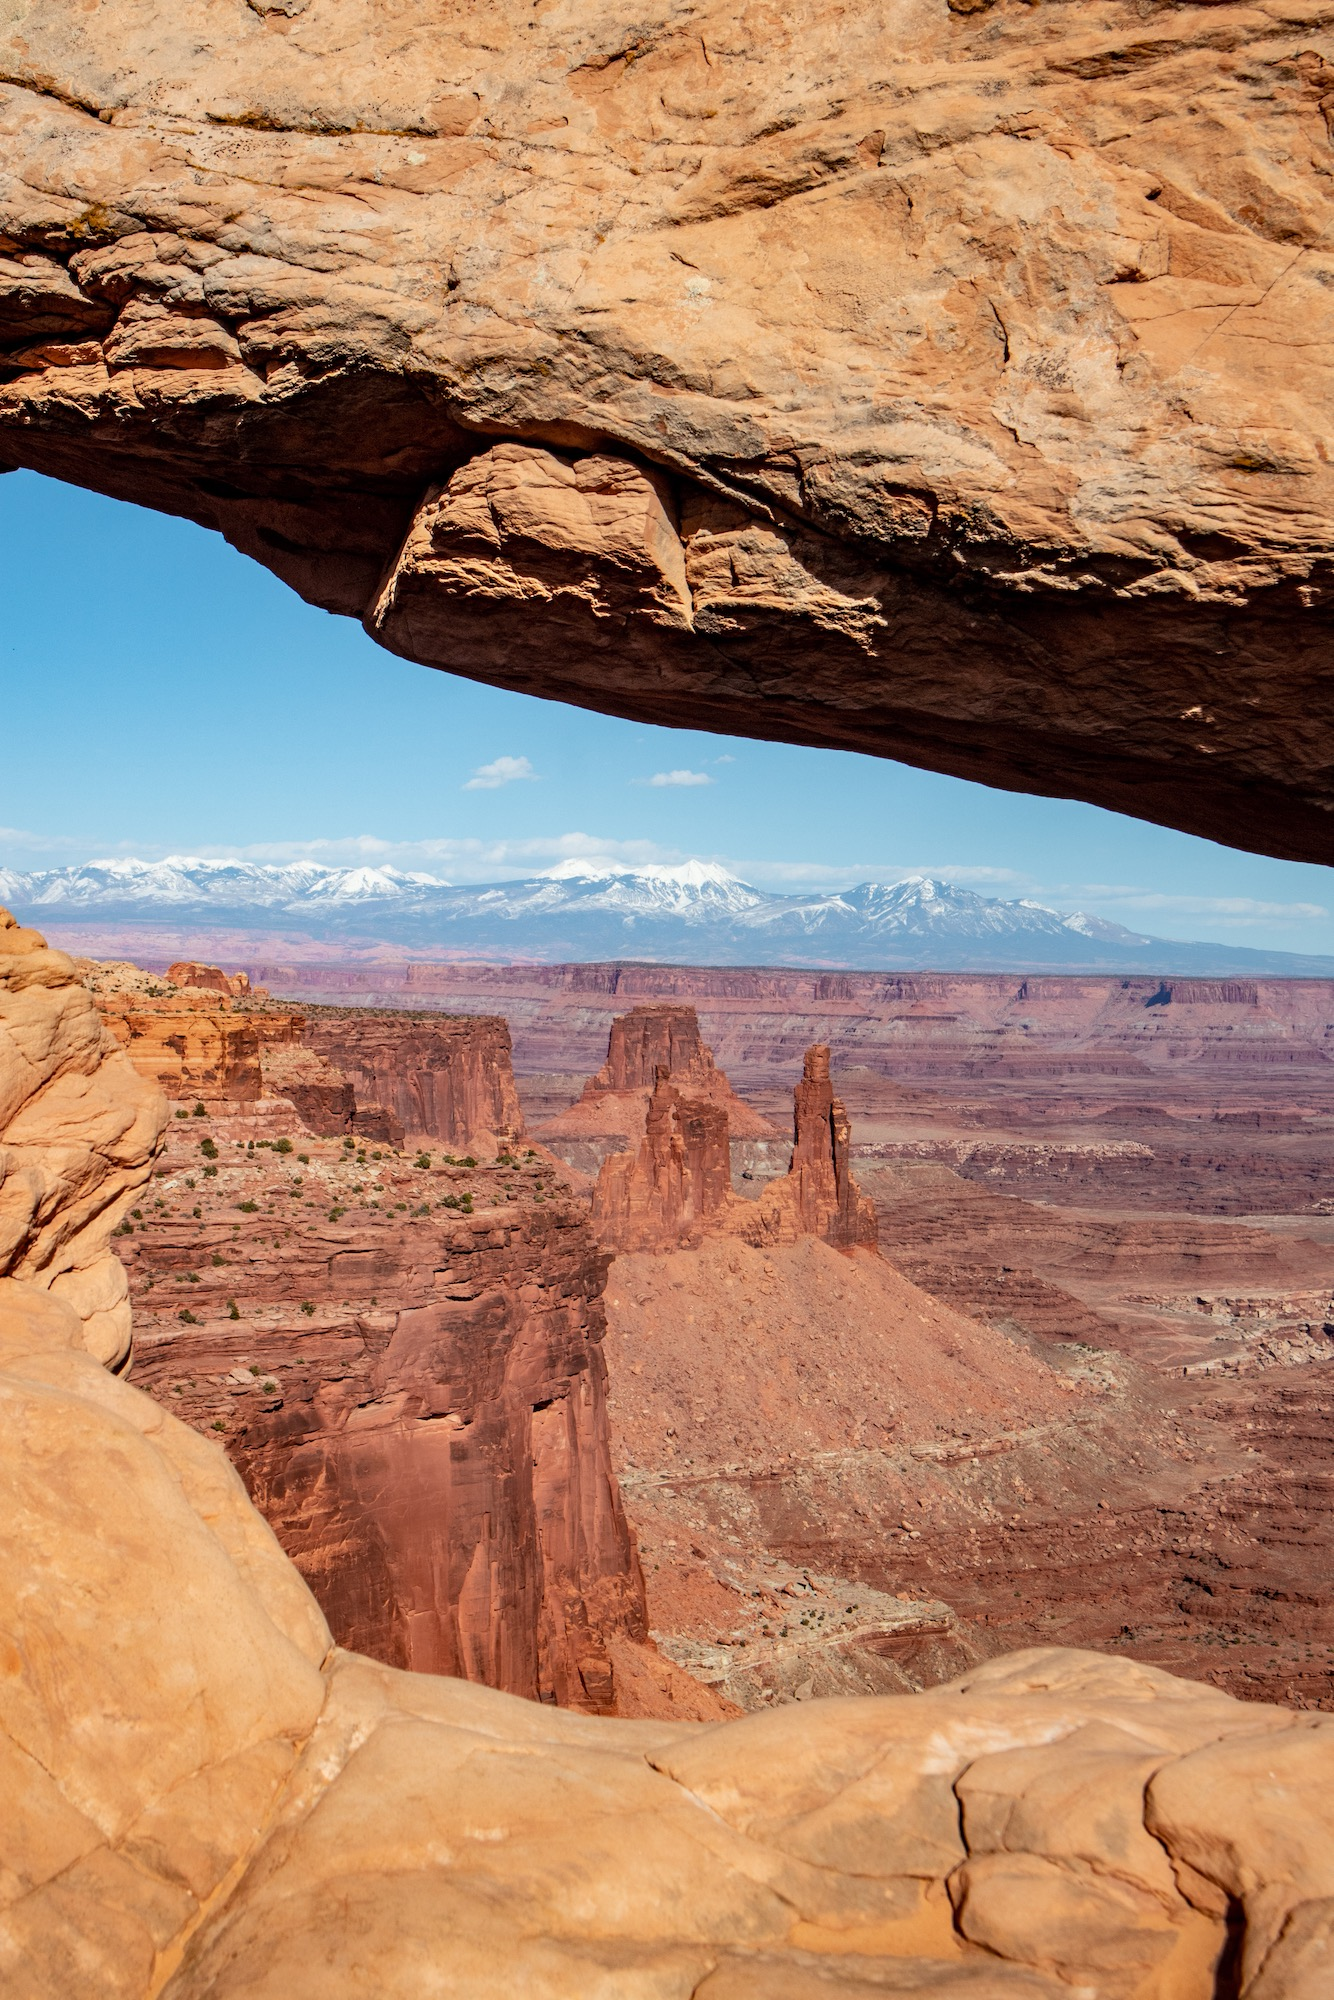 Looking through Mesa Arch toward Washerwoman Arch and Airport Tower.